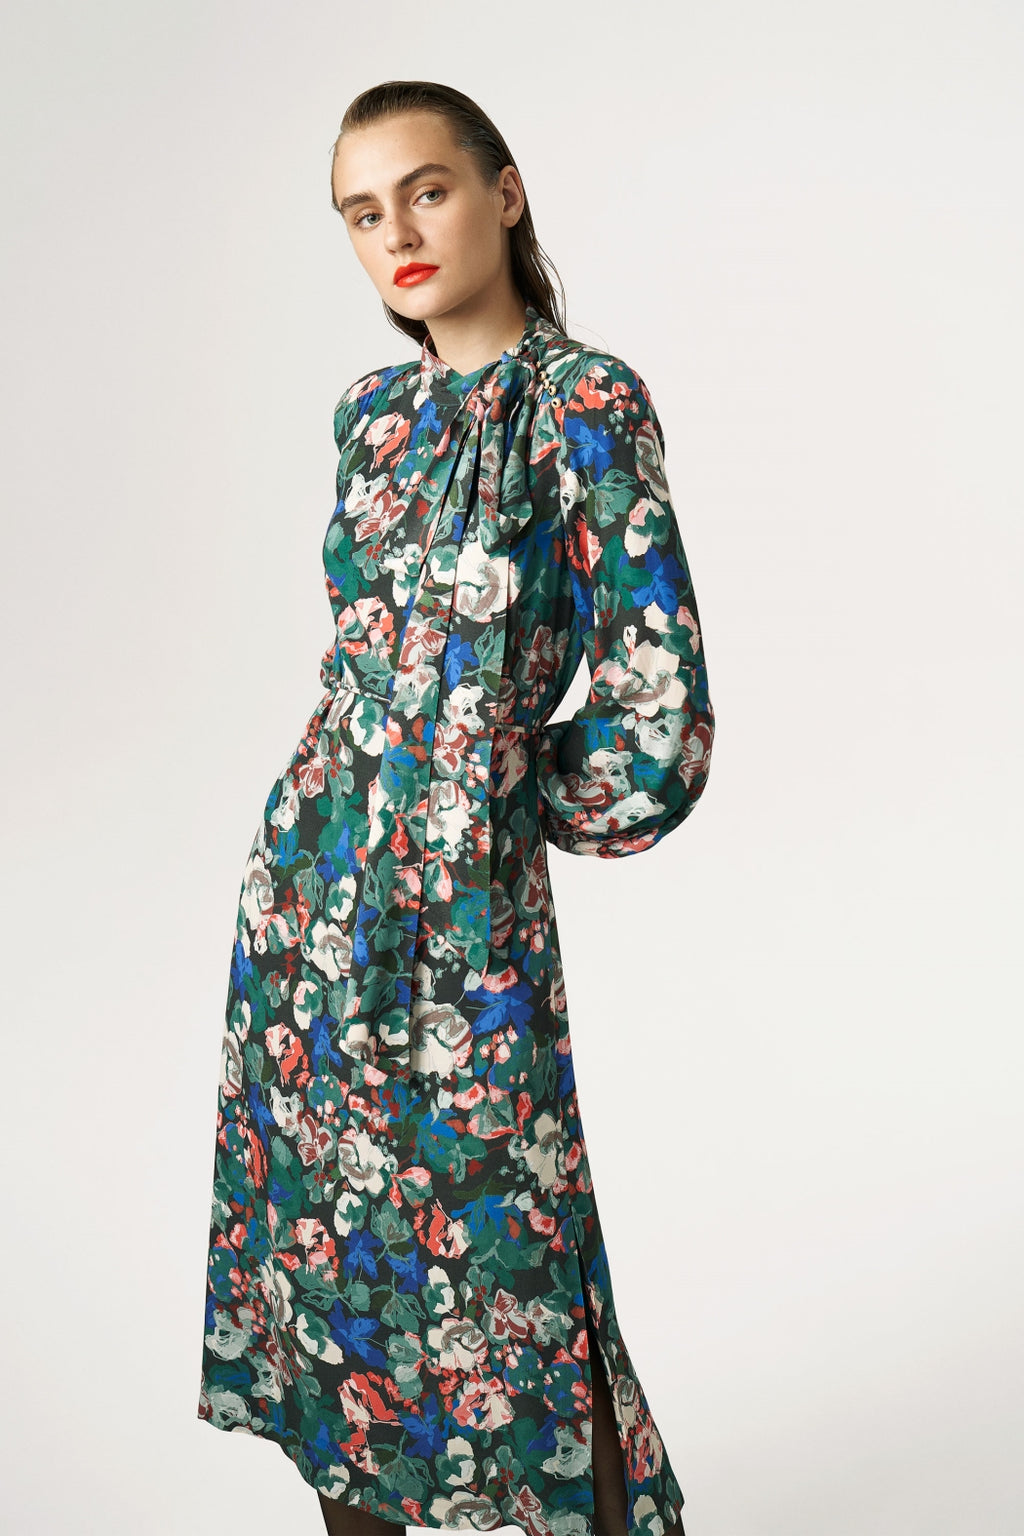 FLOWER PATTERNED DRESS WITH BELT